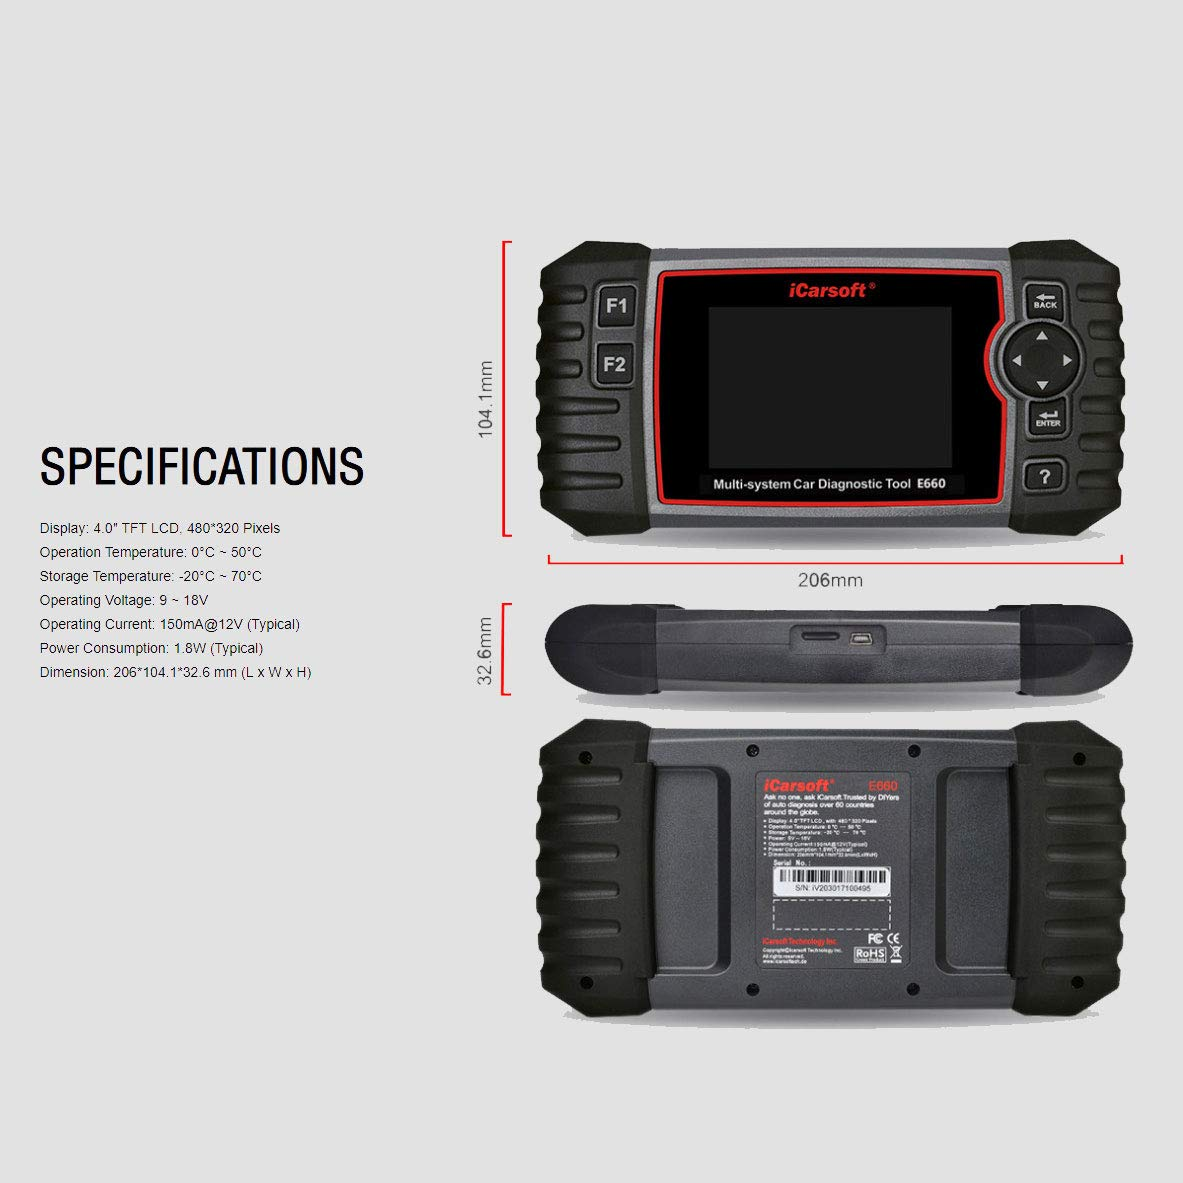 iCarsoft E660 ABS+SRS+SAS+EPB+OBD II Diagnostic Tool by iCarsoft (Image #4)